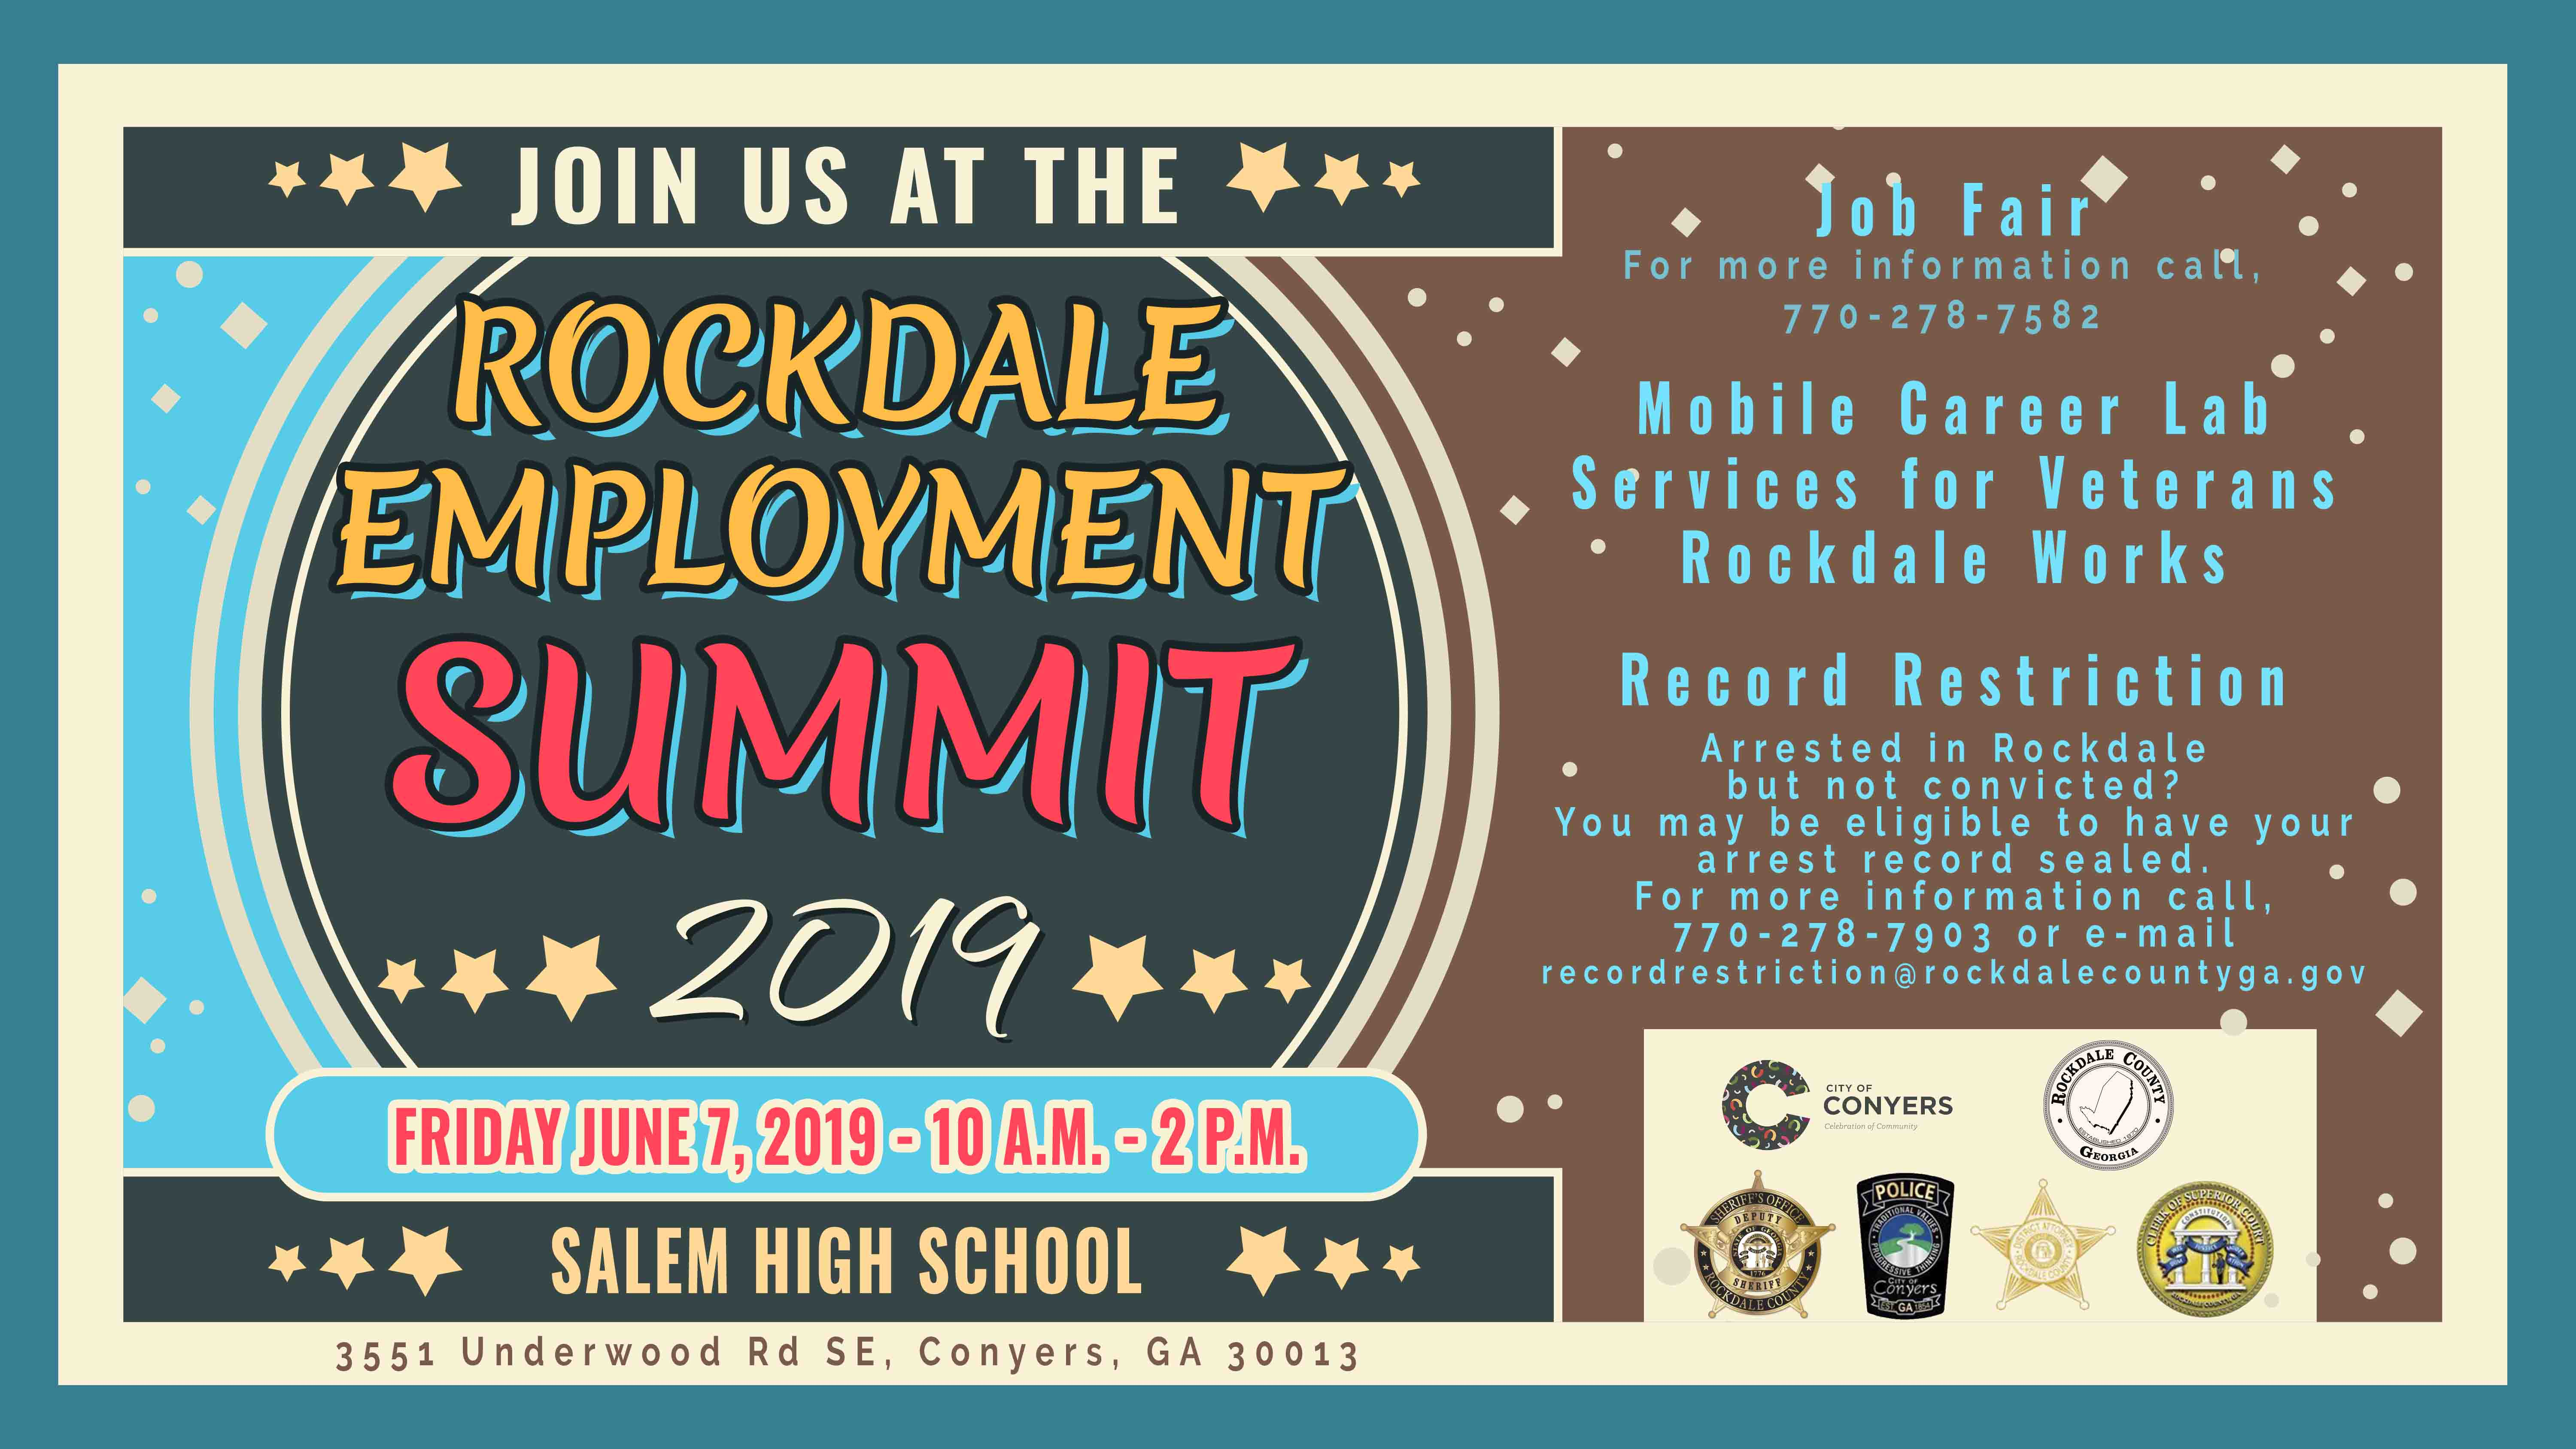 2019 Rockdale Employment Summit @ Salem High School